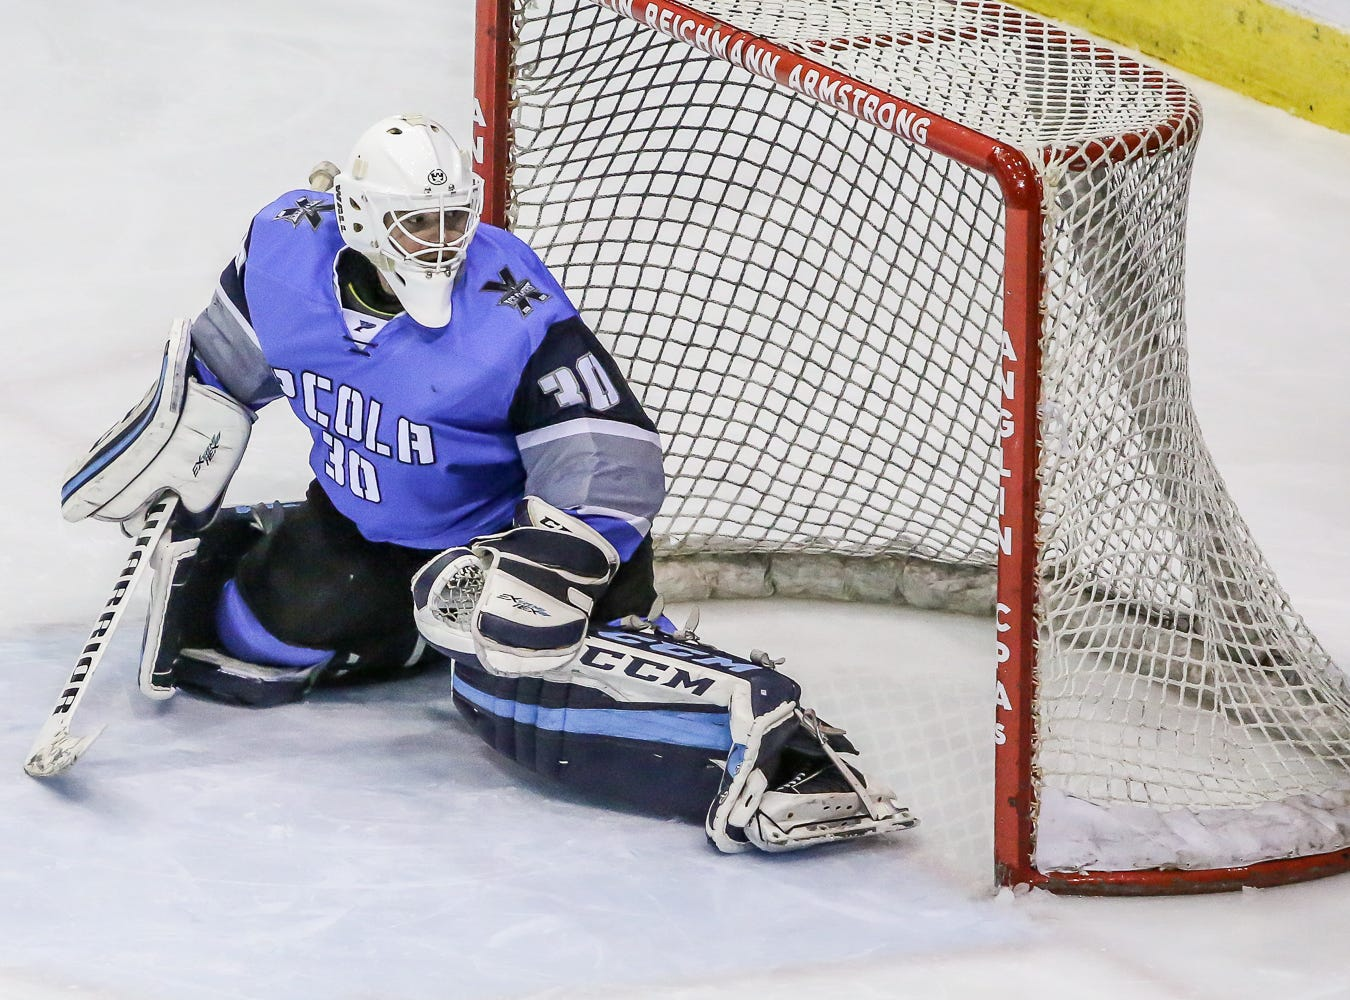 Pensacola goalie Brian Billett (30) watches as a Fayetteville shot goes wide of the net at the Pensacola Bay Center on Saturday, January 5, 2019.